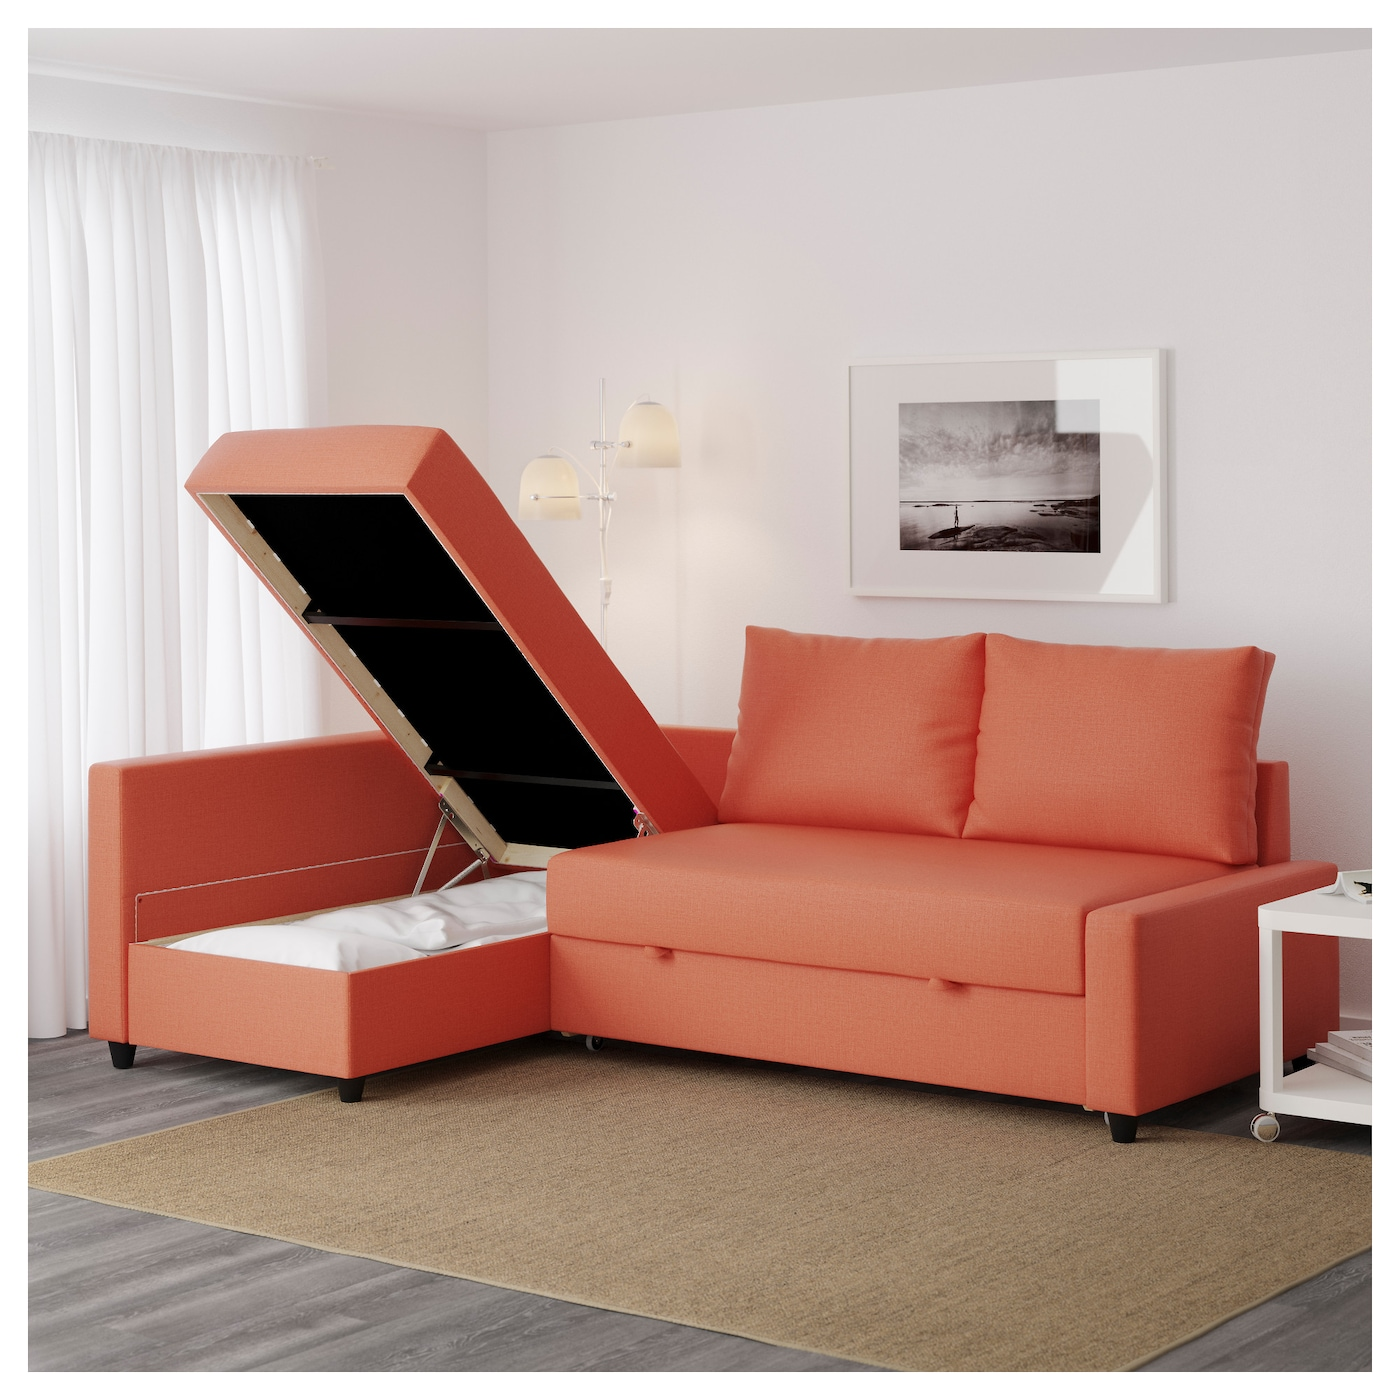 sofa bed orange orange futon couch from target i have. Black Bedroom Furniture Sets. Home Design Ideas